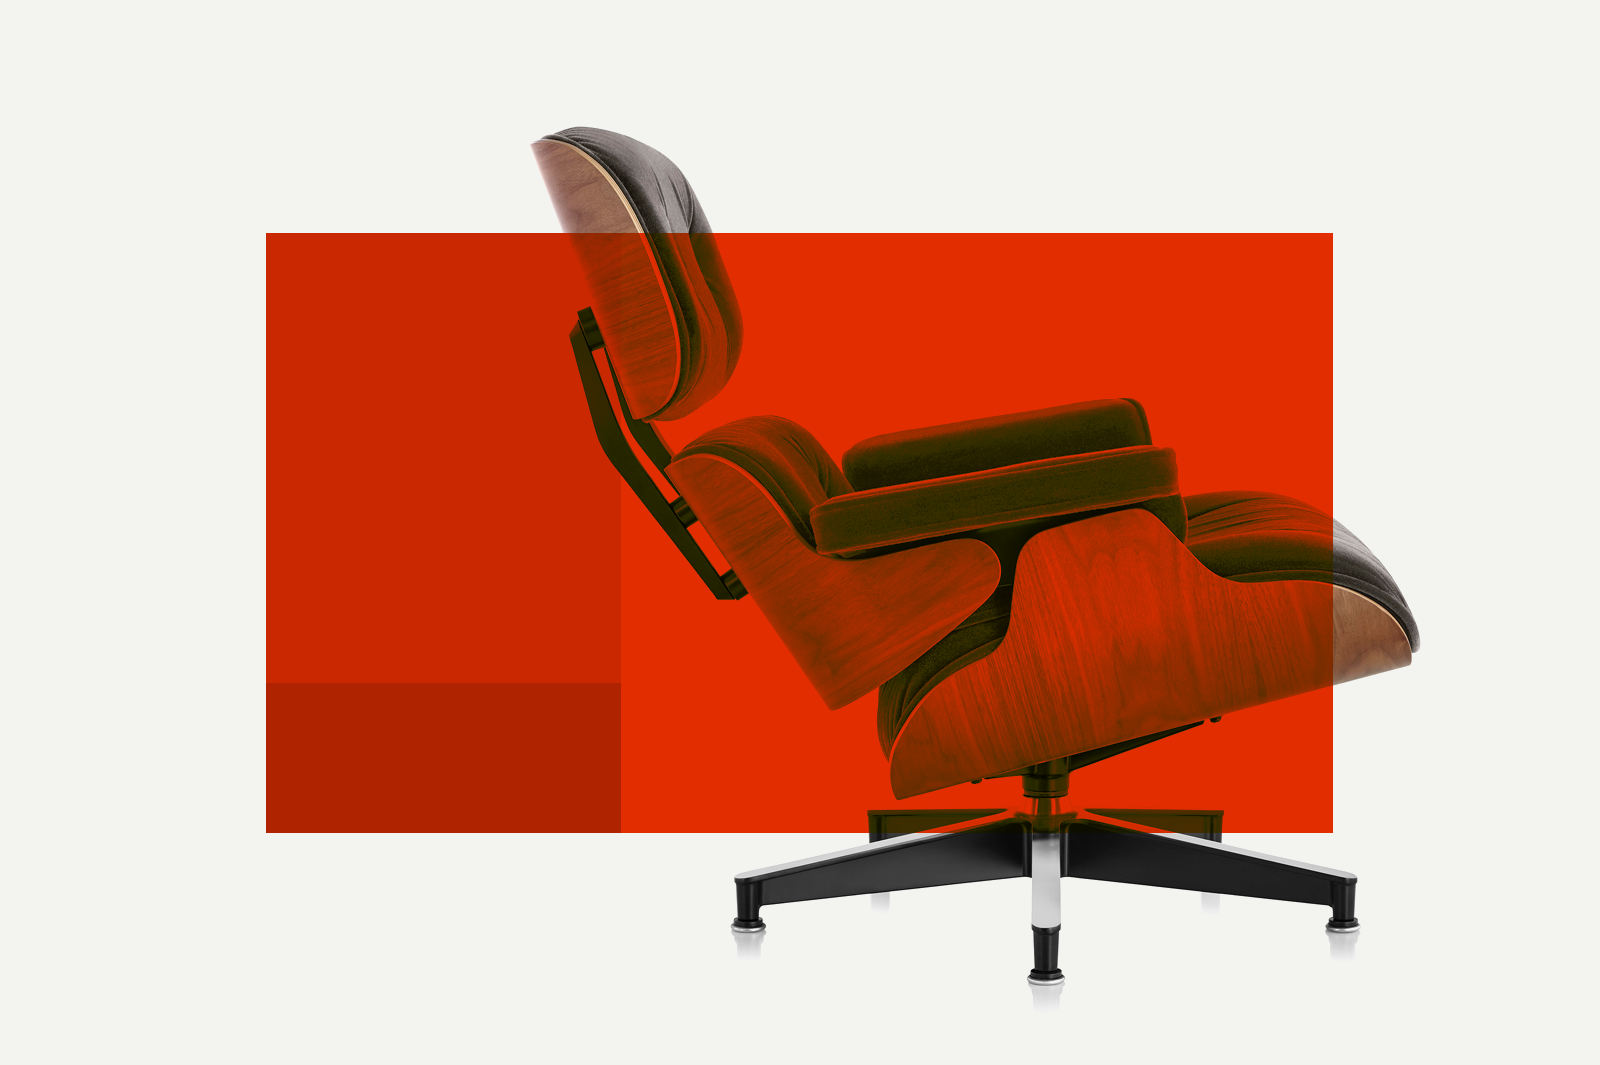 Product design color palette using shades of Red with Eames Lounge Chair.